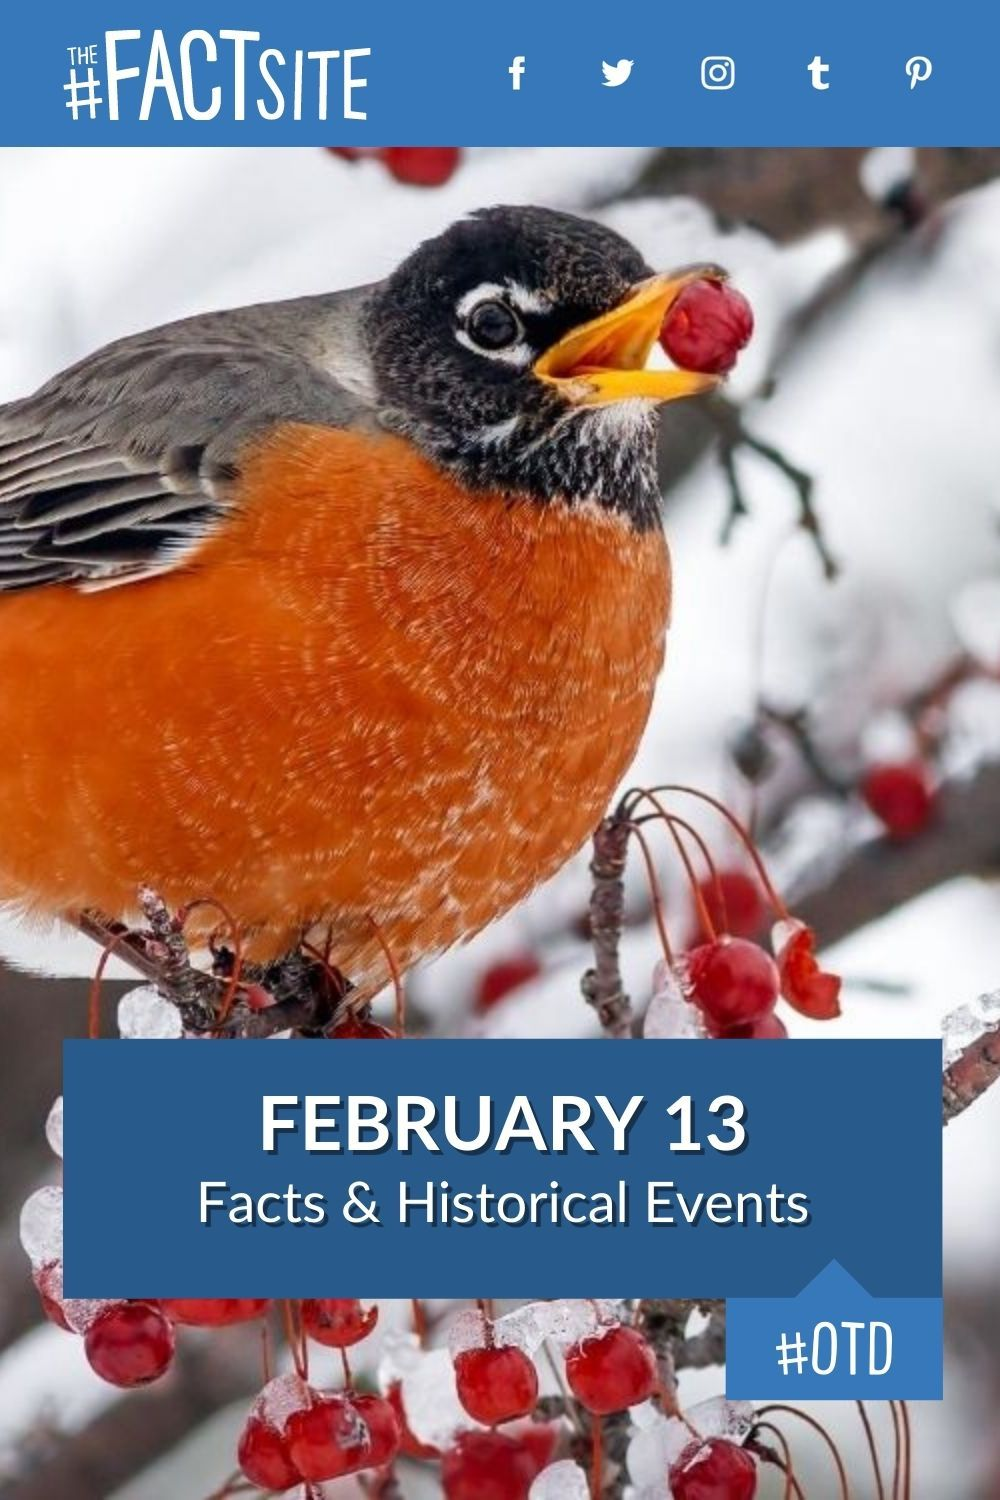 Facts & Historic Events That Happened on February 13